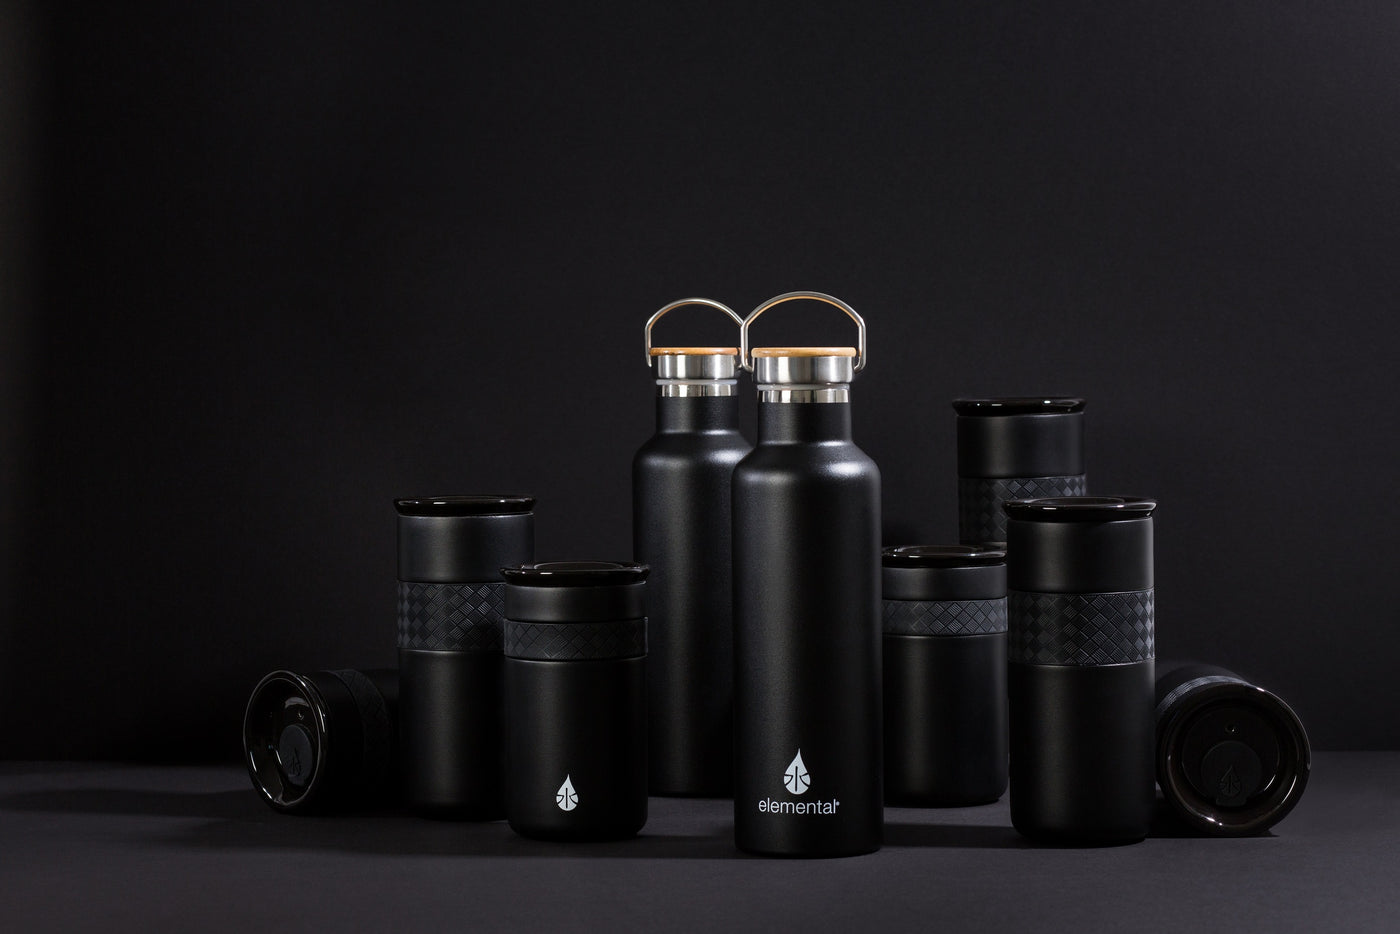 ASI Sample Pack - Exclusive Classic Elemental Bottle and Tumblers (3 items) - Elemental Gifts